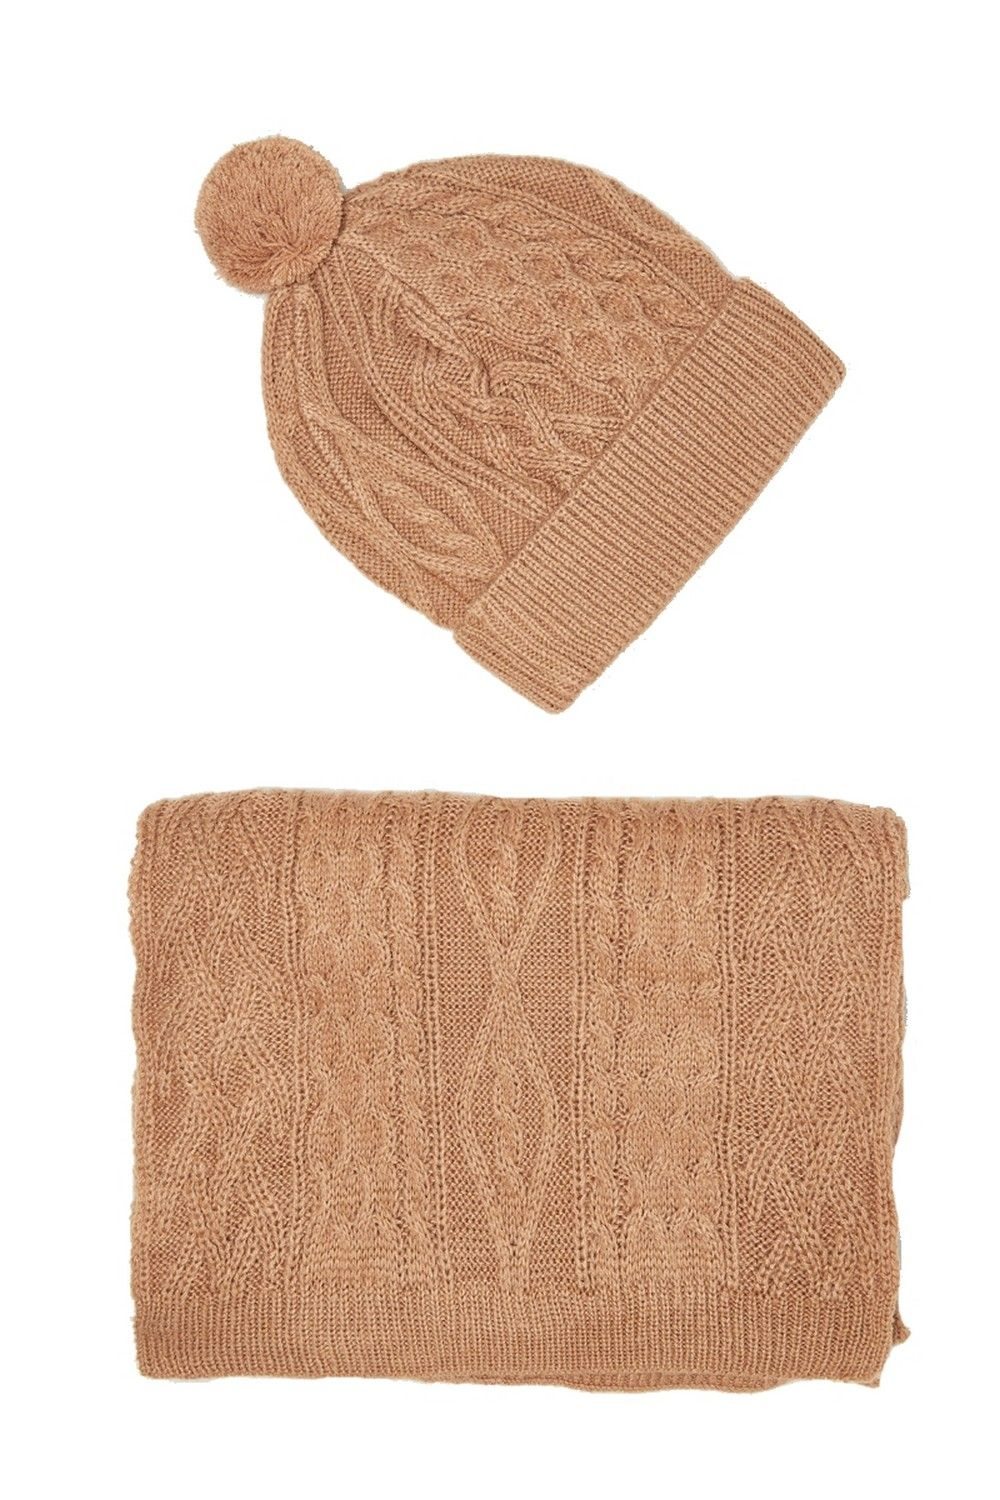 William De Faye Twisted 4 Yarn 200x30cm Scarf & Beanie in Beige